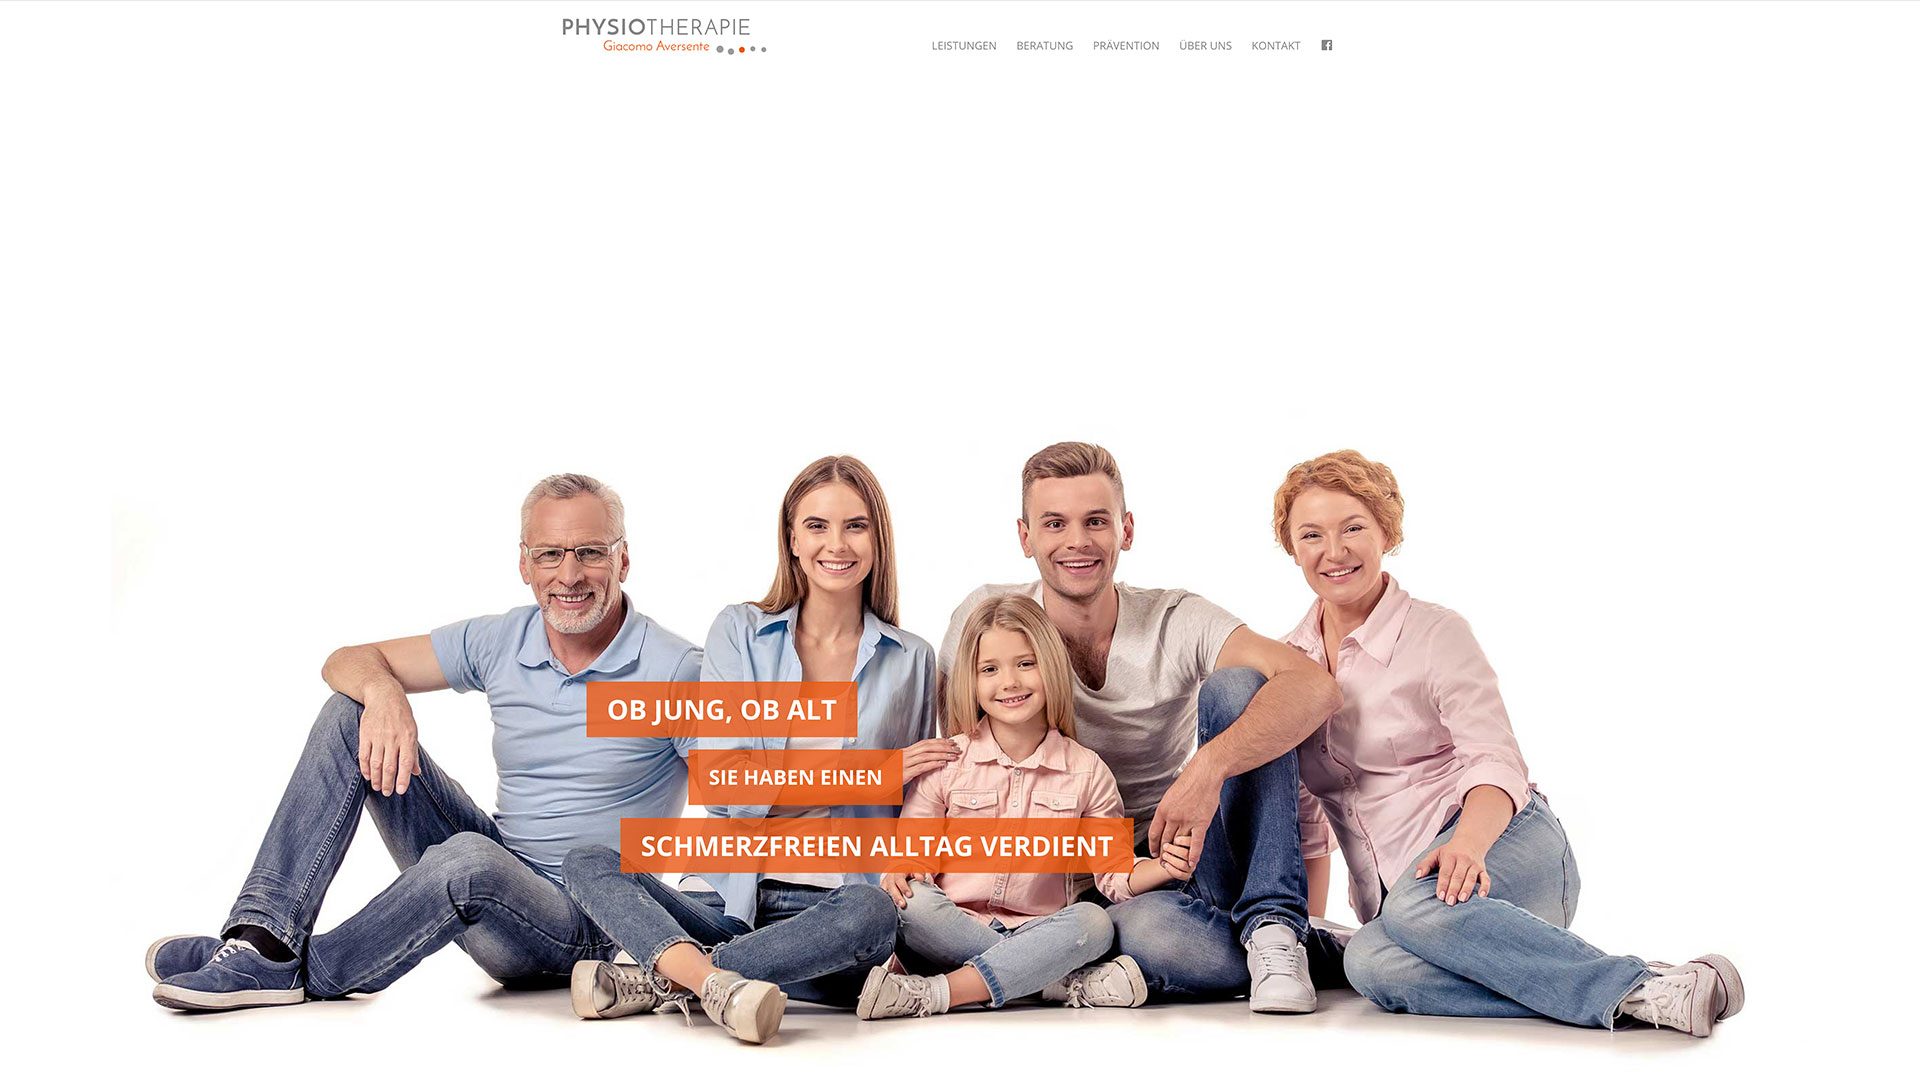 Physiotherapie Remscheid - Website